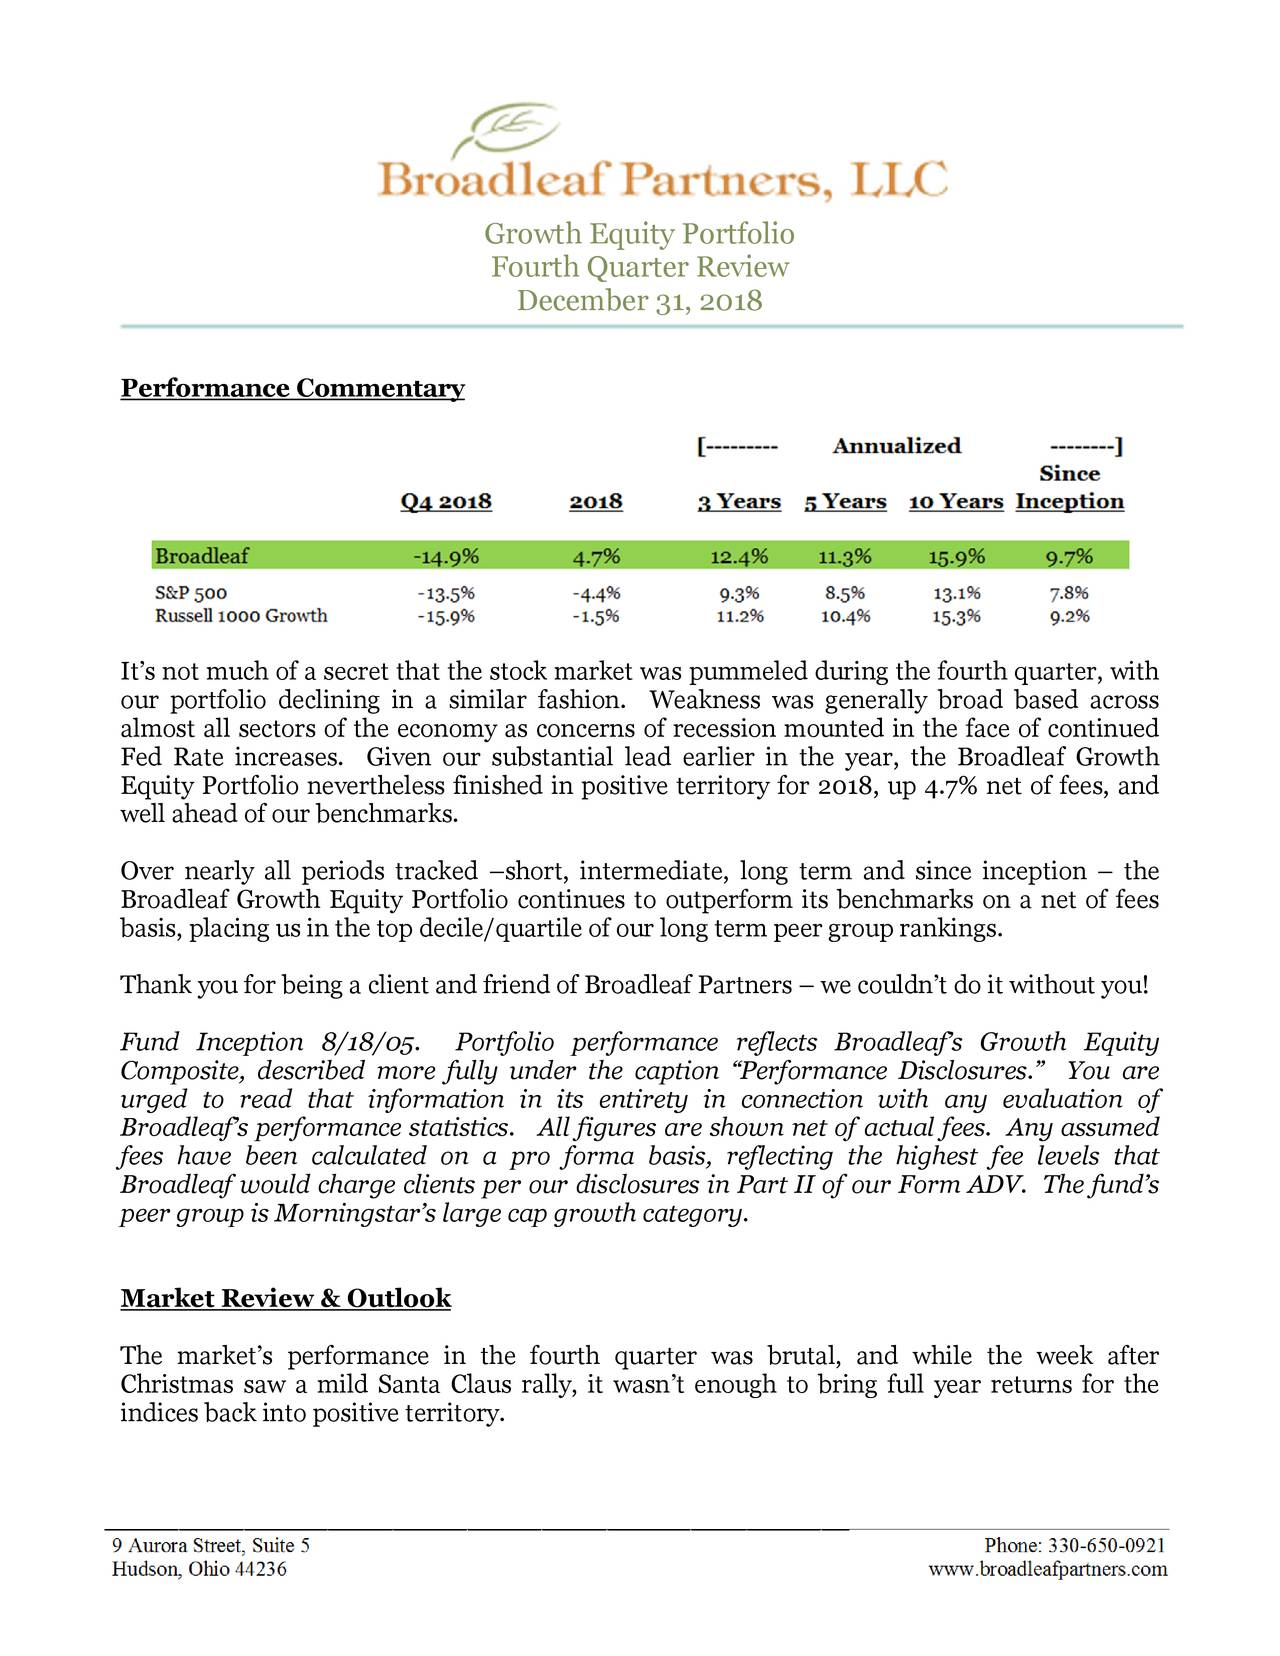 "Fourth Quarter Review December 31, 2018 Performance Commentary It's not much of a secret that the stock market was pummeled during the fourth quarter, with our portfolio declining in a similar fashion. Weakness was generally broad based across almost all sectors of the economy as concerns of recession mounted in the face of continued Fed Rate increases. Given our substantial le ad earlier in the year, the Broadleaf Growth Equity Portfolio nevertheless fini shed in positive territory for 2018, up 4.7% net of fees, and well ahead of our benchmarks. Over nearly all periods tracked –short, interm ediate, long term and since inception – the Broadleaf Growth Equity Portfolio continues to outperform its benchmarks on a net of fees basis, placing us in the top decile/quartile of our long term peer group rankings. Thank you for being a client and friend of Broadleaf Partners – we couldn't do it without you! Fund Inception 8/18/05. Portfolio perfor mance reflects Broadleaf's Growth Equity Composite, described more fully under the ca ption ""Performance Disclosures."" You are urged to read that information in its enti rety in connection with any evaluation of Broadleaf's performance statistics. All figure s are shown net of actual fees. Any assumed fees have been calculated on a pro forma ba sis, reflecting the highest fee levels that Broadleaf would charge clients pe r our disclosures in Part II of our Form ADV. The fund's peer group is Morningstar's large cap growth category. Market Review & Outlook The market's performance in the fourth qu arter was brutal, and while the week after Christmas saw a mild Santa Claus rally, it wasn 't enough to bring full year returns for the indices back into positive territory. ________________________________________________________________________________ . 9 Aurora Street, Suite 5 Phone: 330-650-0921 Hudson, Ohio 44236 www.broadleafpartners.com"